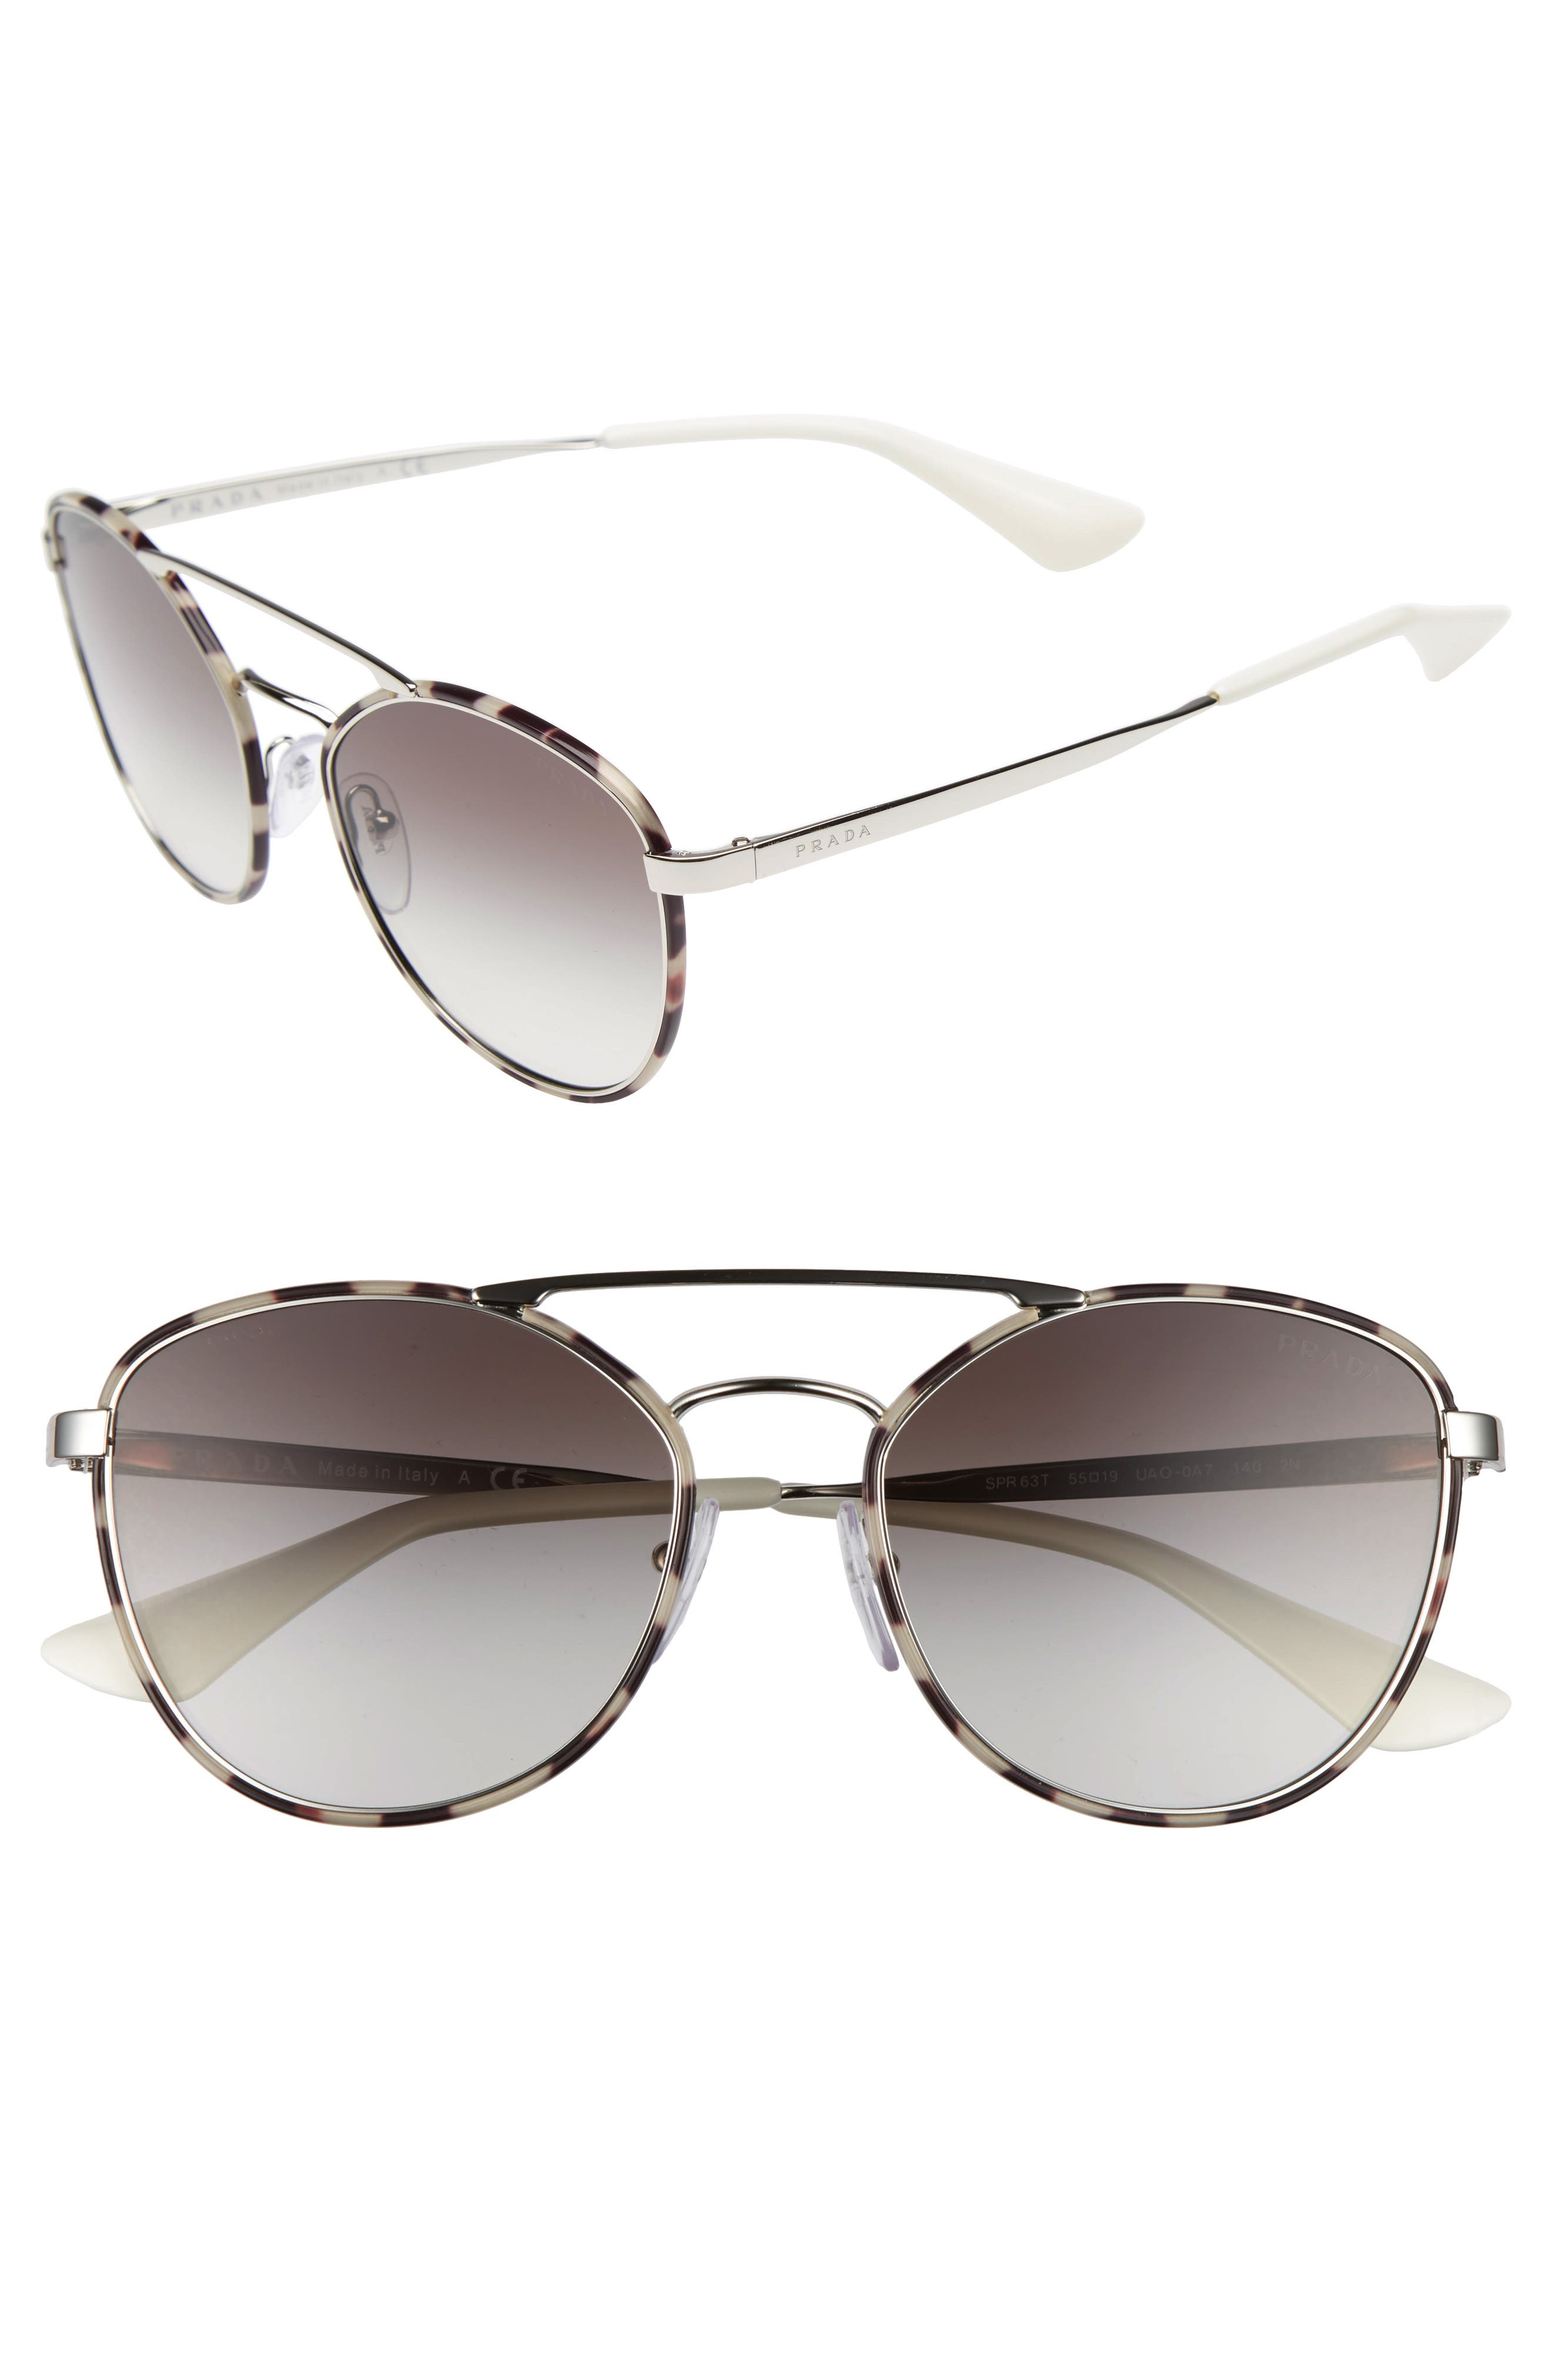 55mm Gradient Aviator Sunglasses,                             Main thumbnail 1, color,                             Spotty Brown